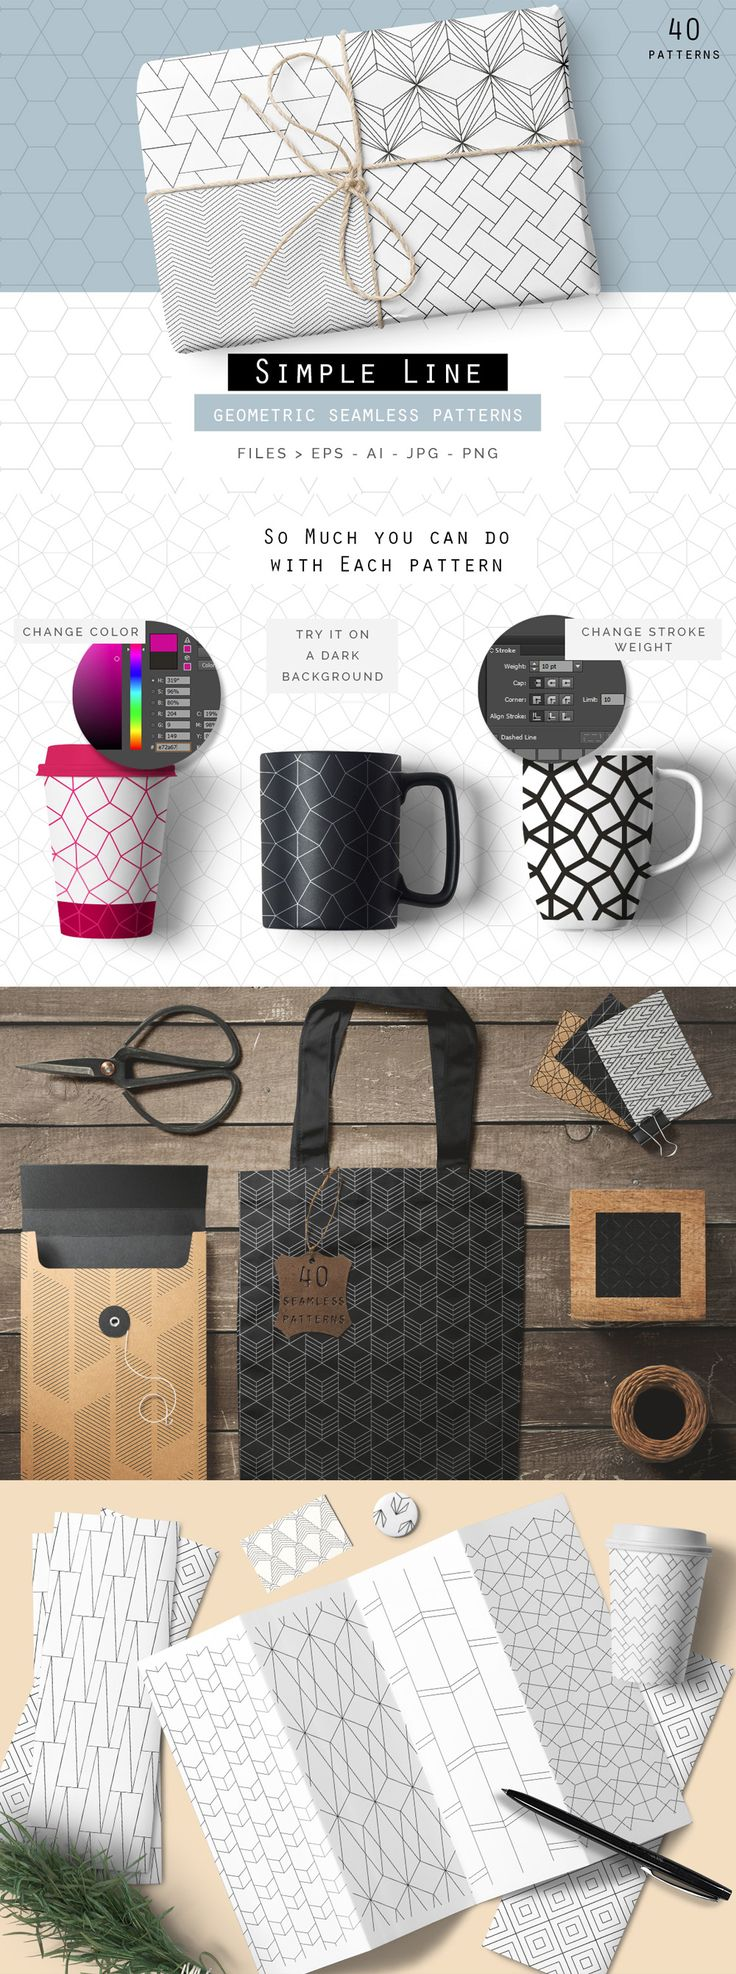 Simple Line #Geometric seamless #Patterns Collection